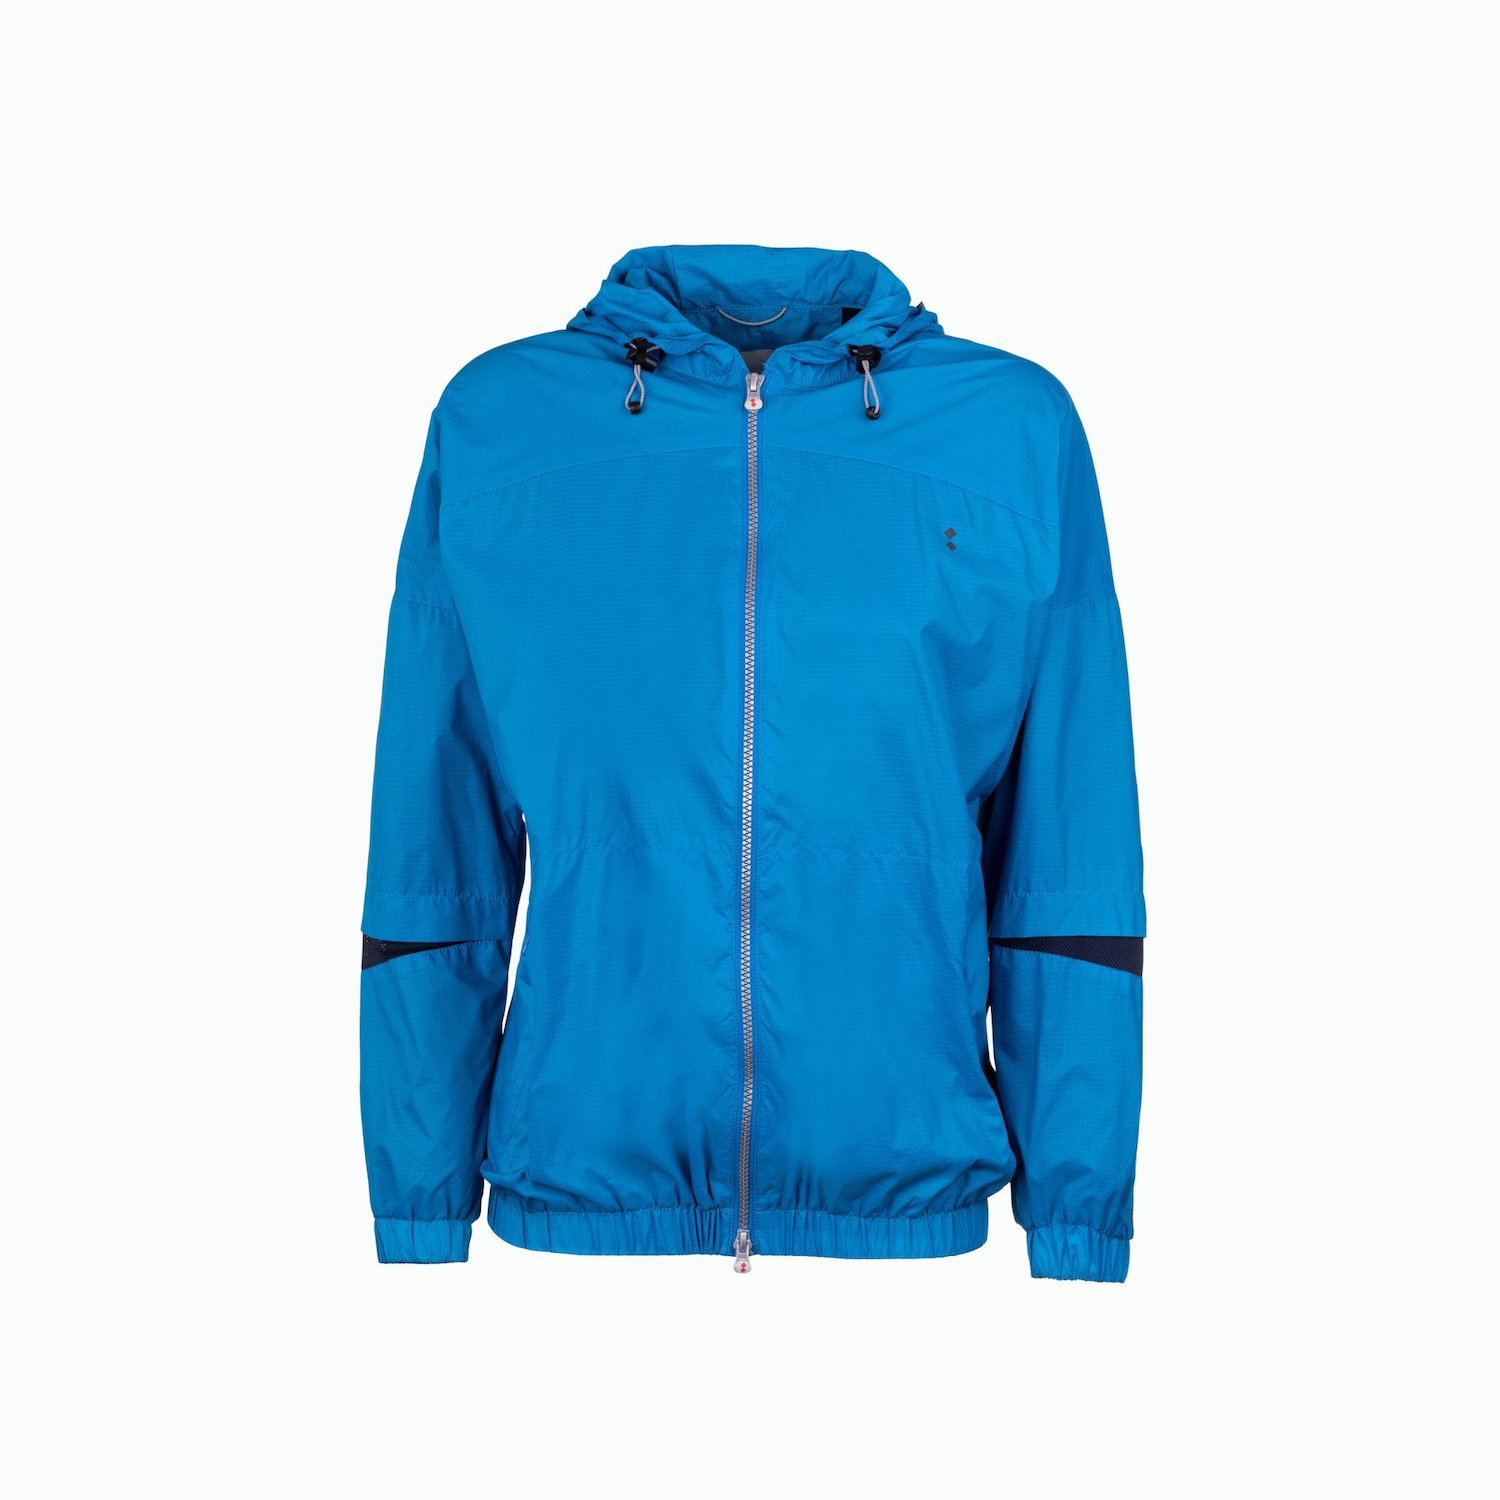 Rope Jacket - Brilliant Blue